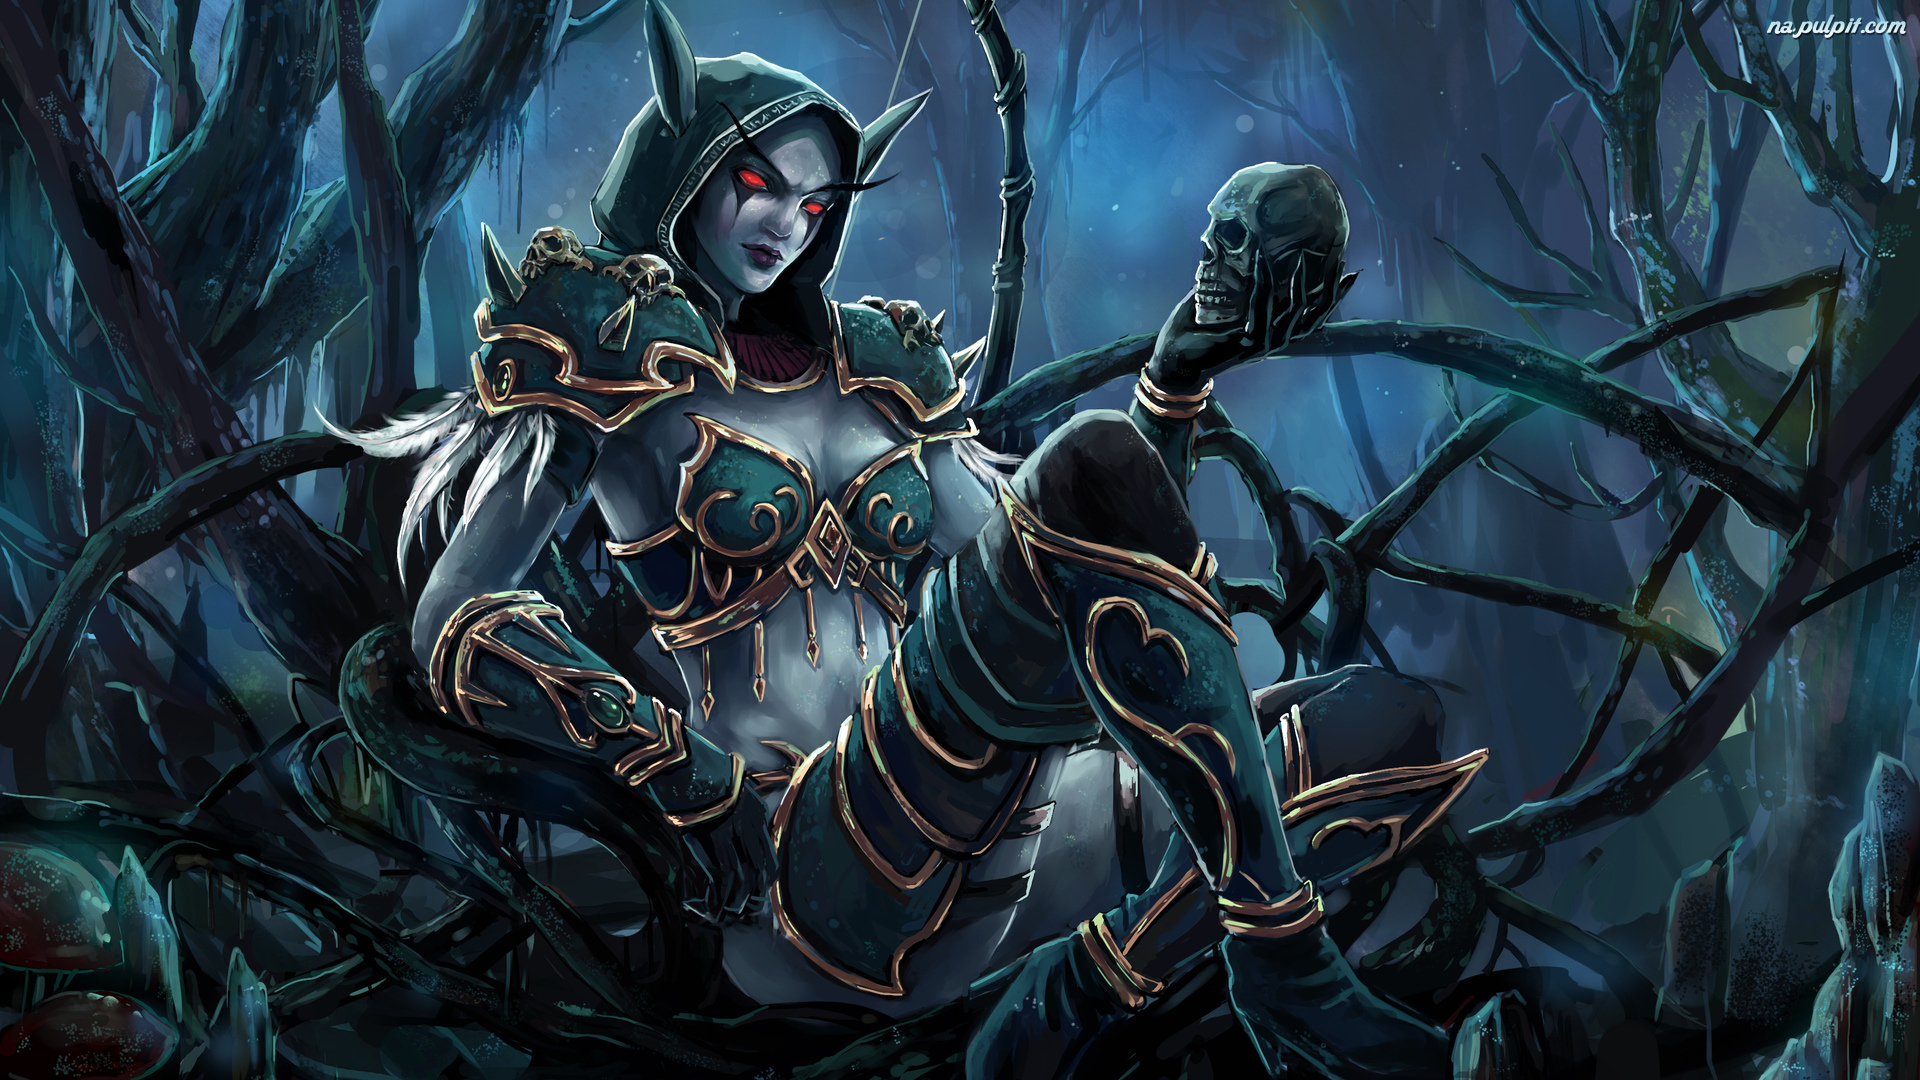 Sylvanas Windrunner, World of Warcraft, Gra, Postać